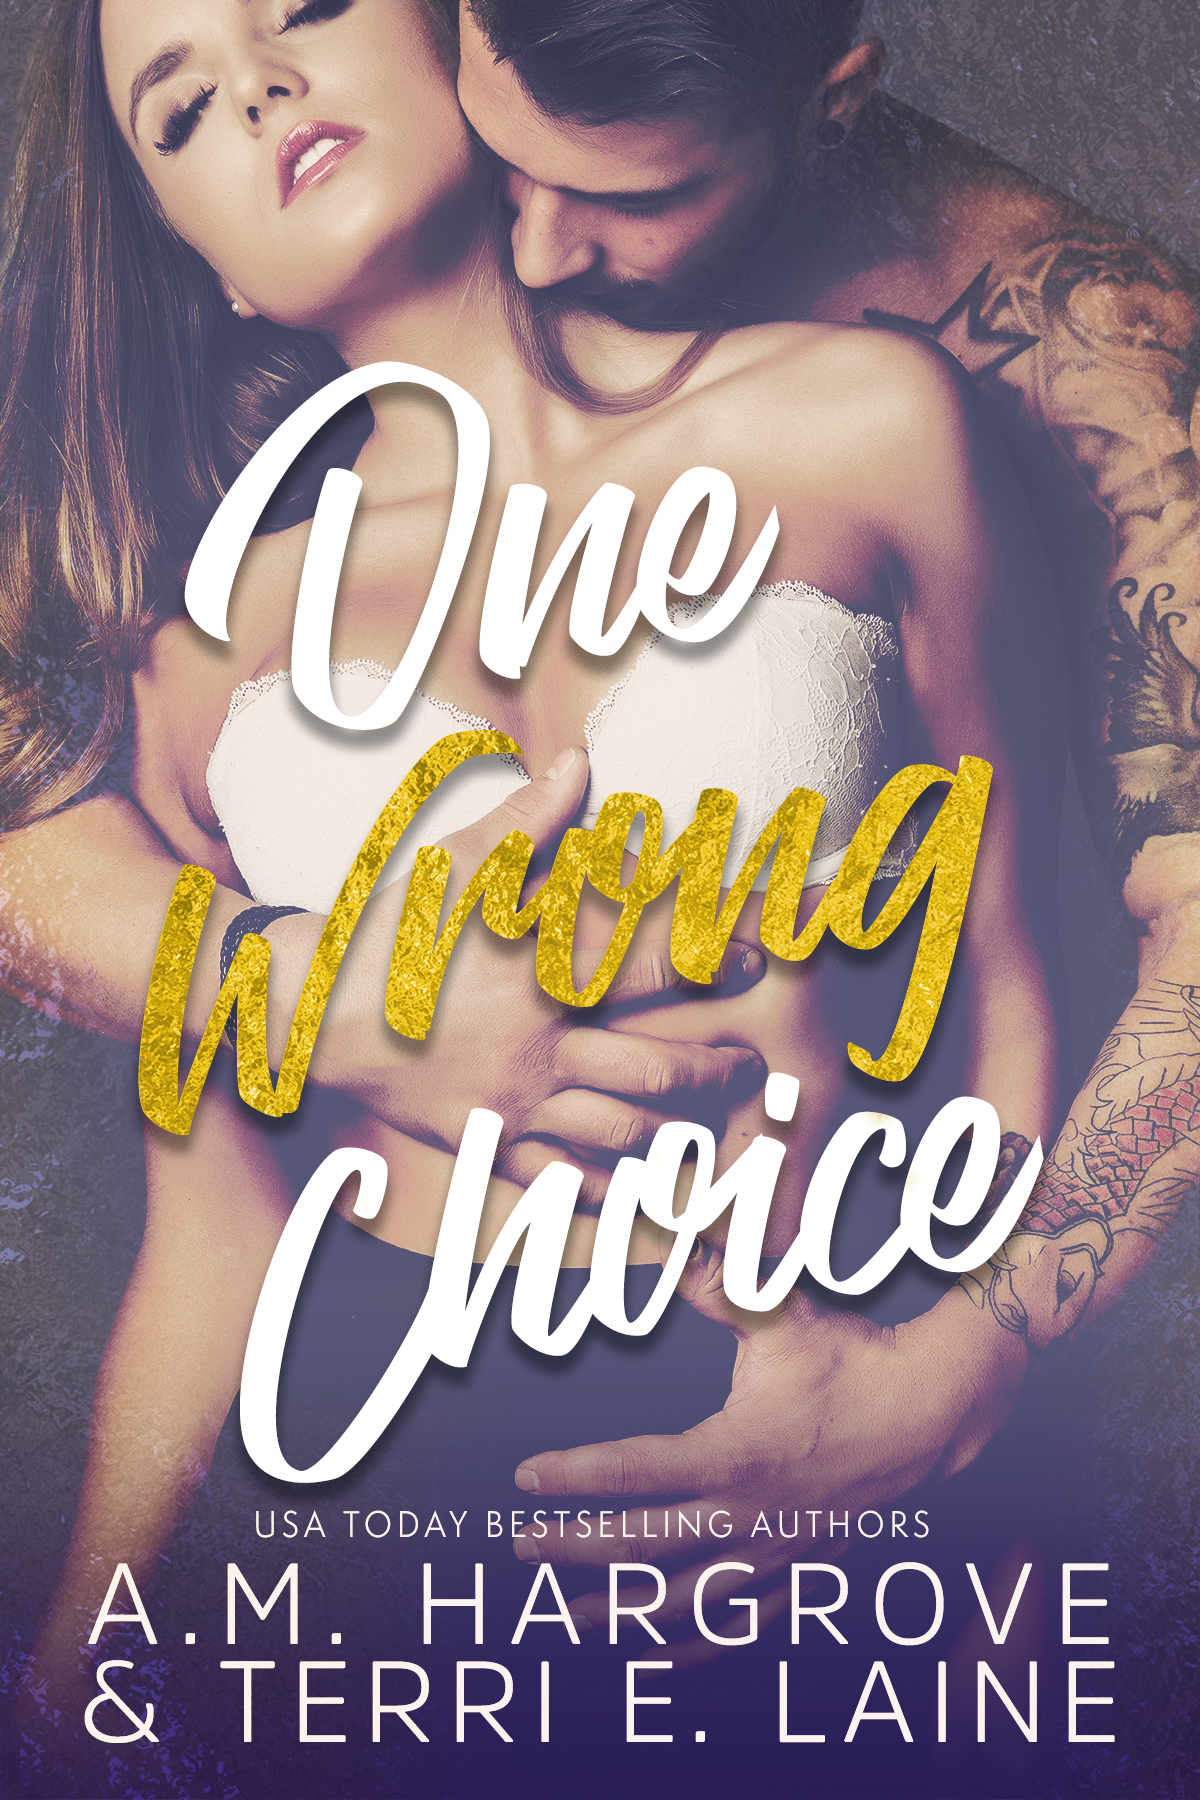 Release Day Blitz: One Wrong Choice (Cruel & Beautiful #3) by AM Hargrove & Terri E Laine